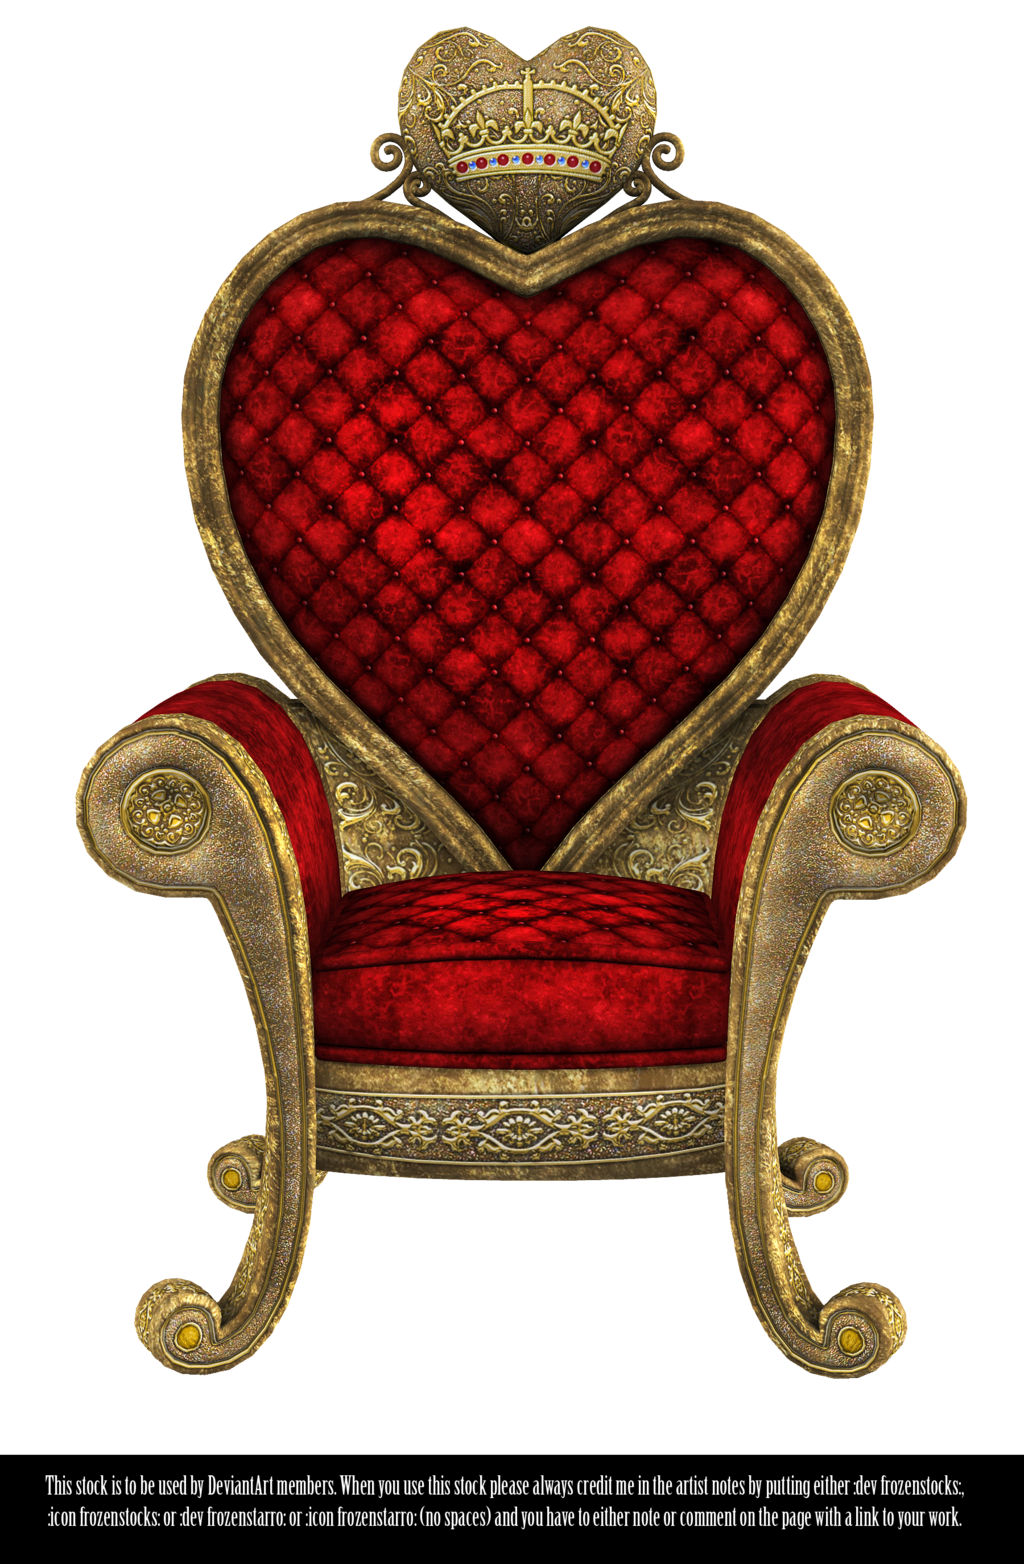 jpg Queen of Hearts Throne Render